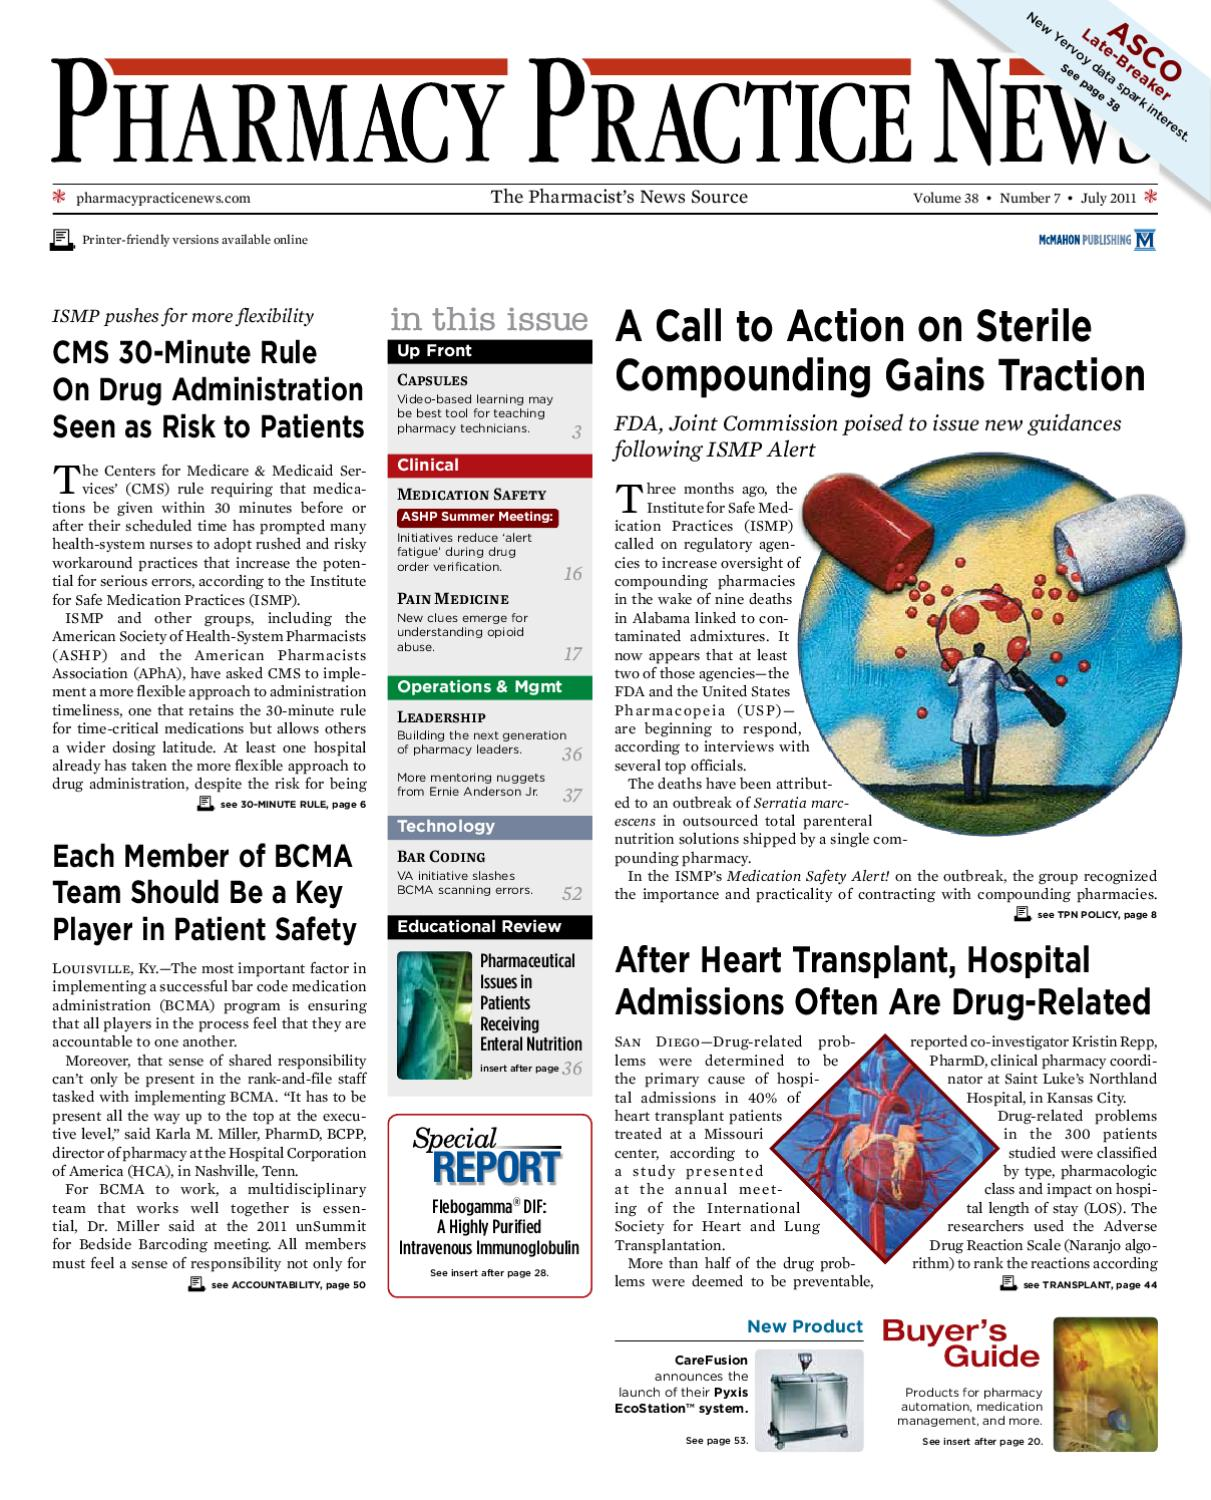 July 2011 Digital Edition Of Pharmacy Practice News By